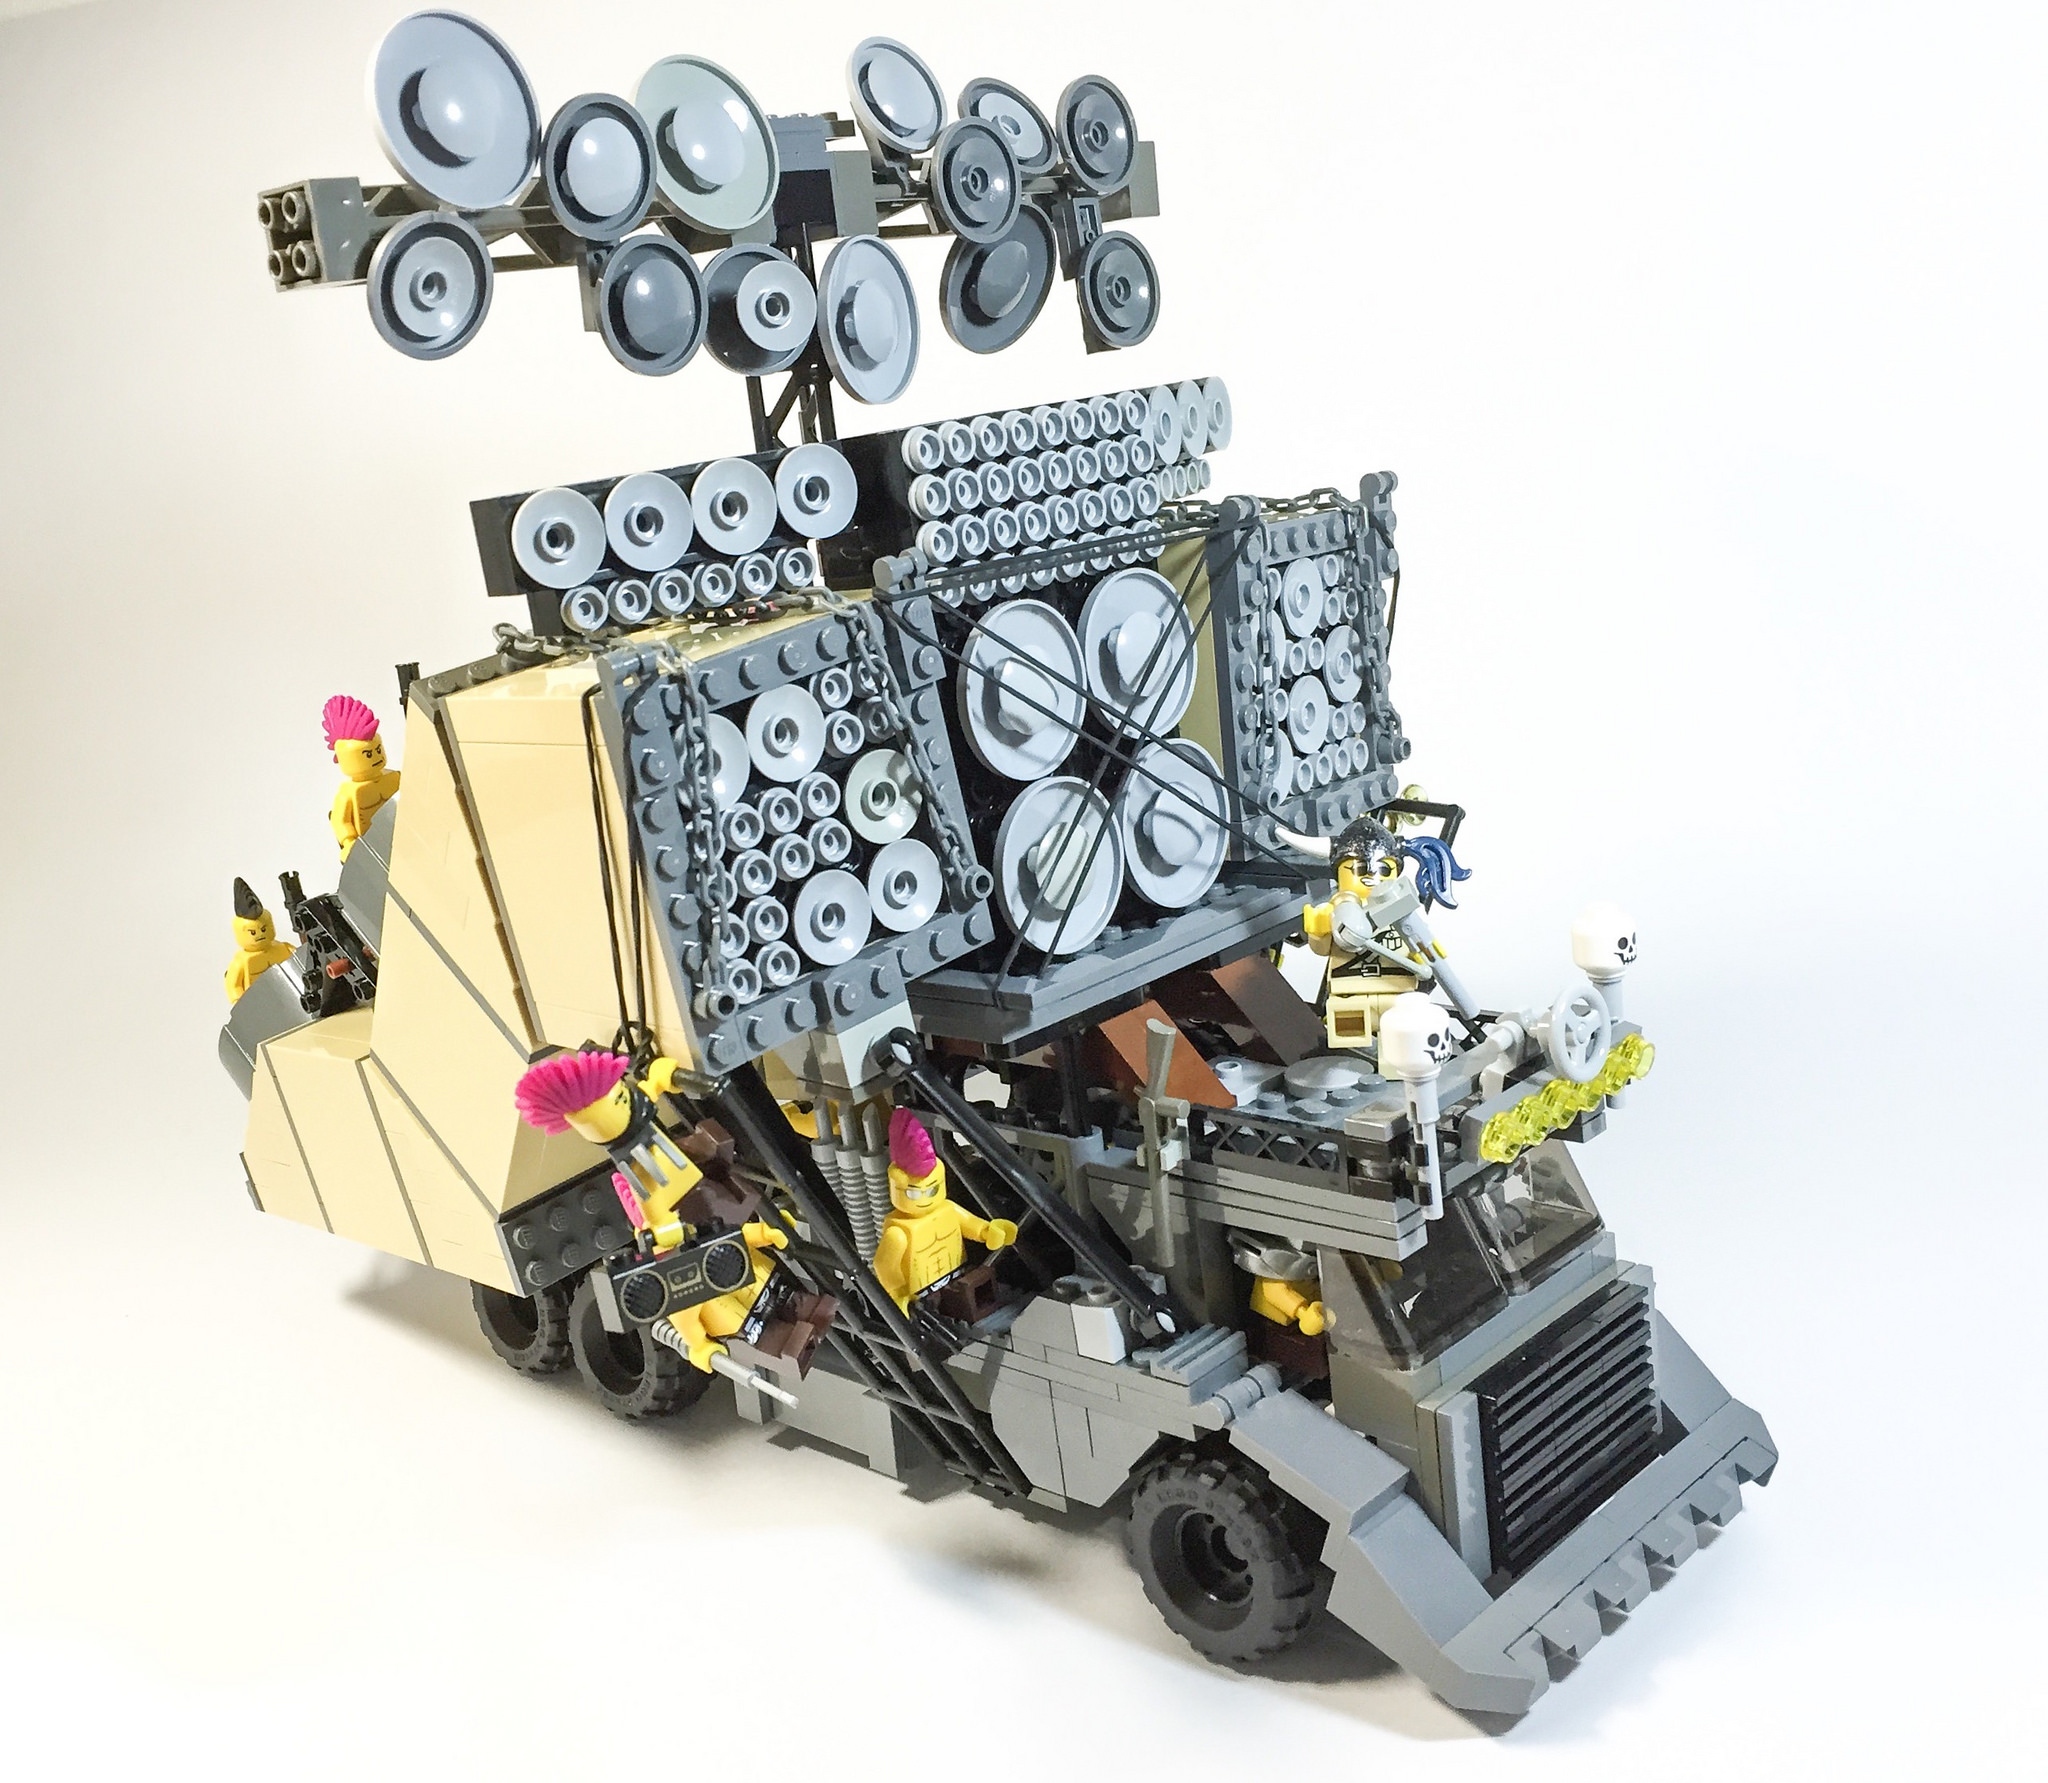 Mad Max S Insane Vehicles Look Awesome In Lego The Verge